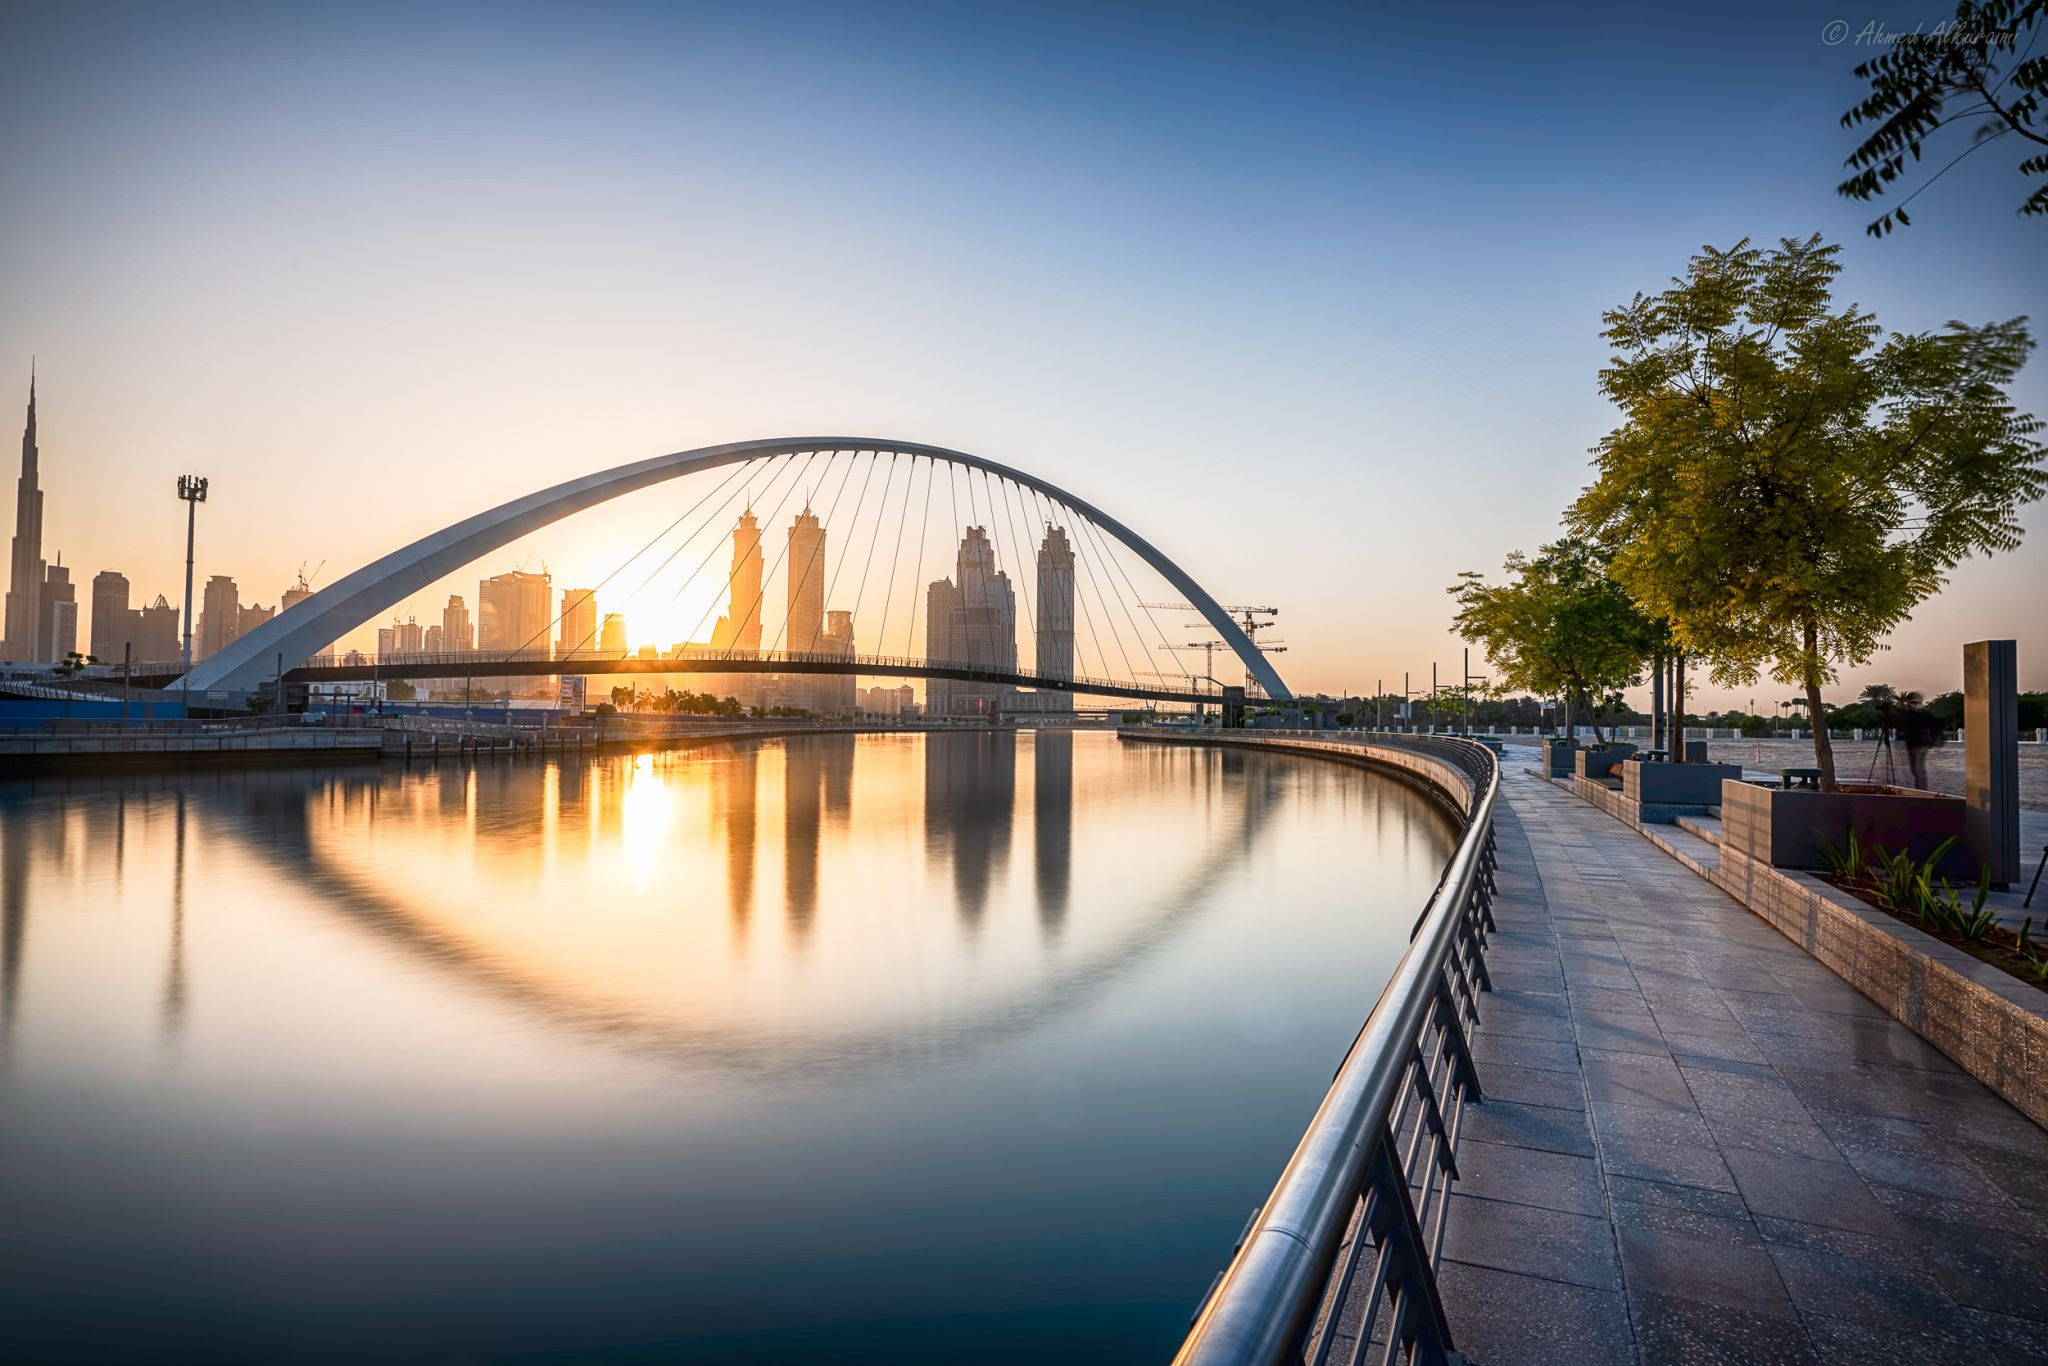 Tolerance bridge dubai, United Arab Emirates